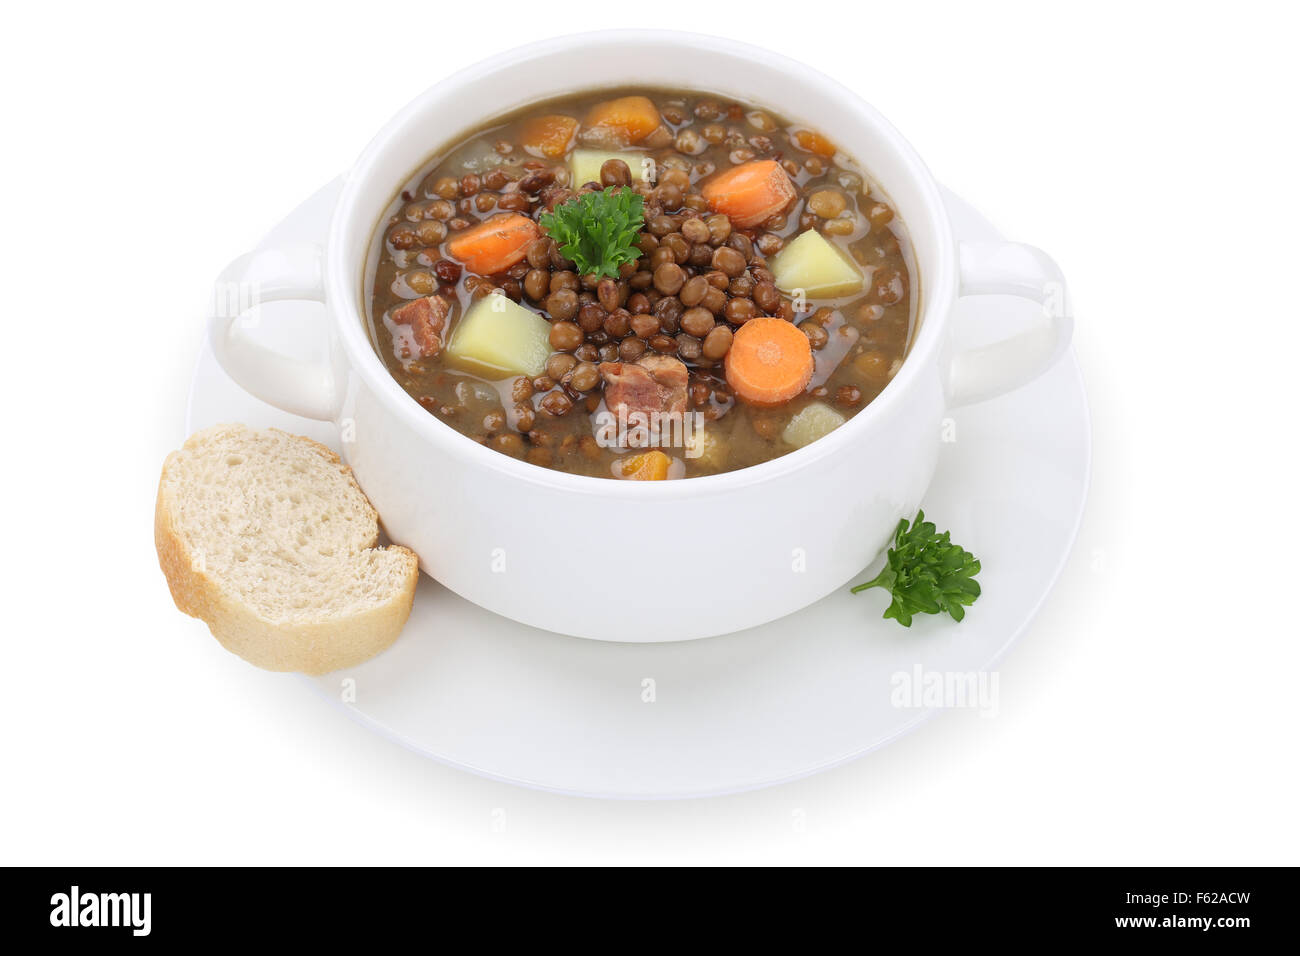 Lentil soup stew meal with lentils in cup isolated on a white background Stock Photo